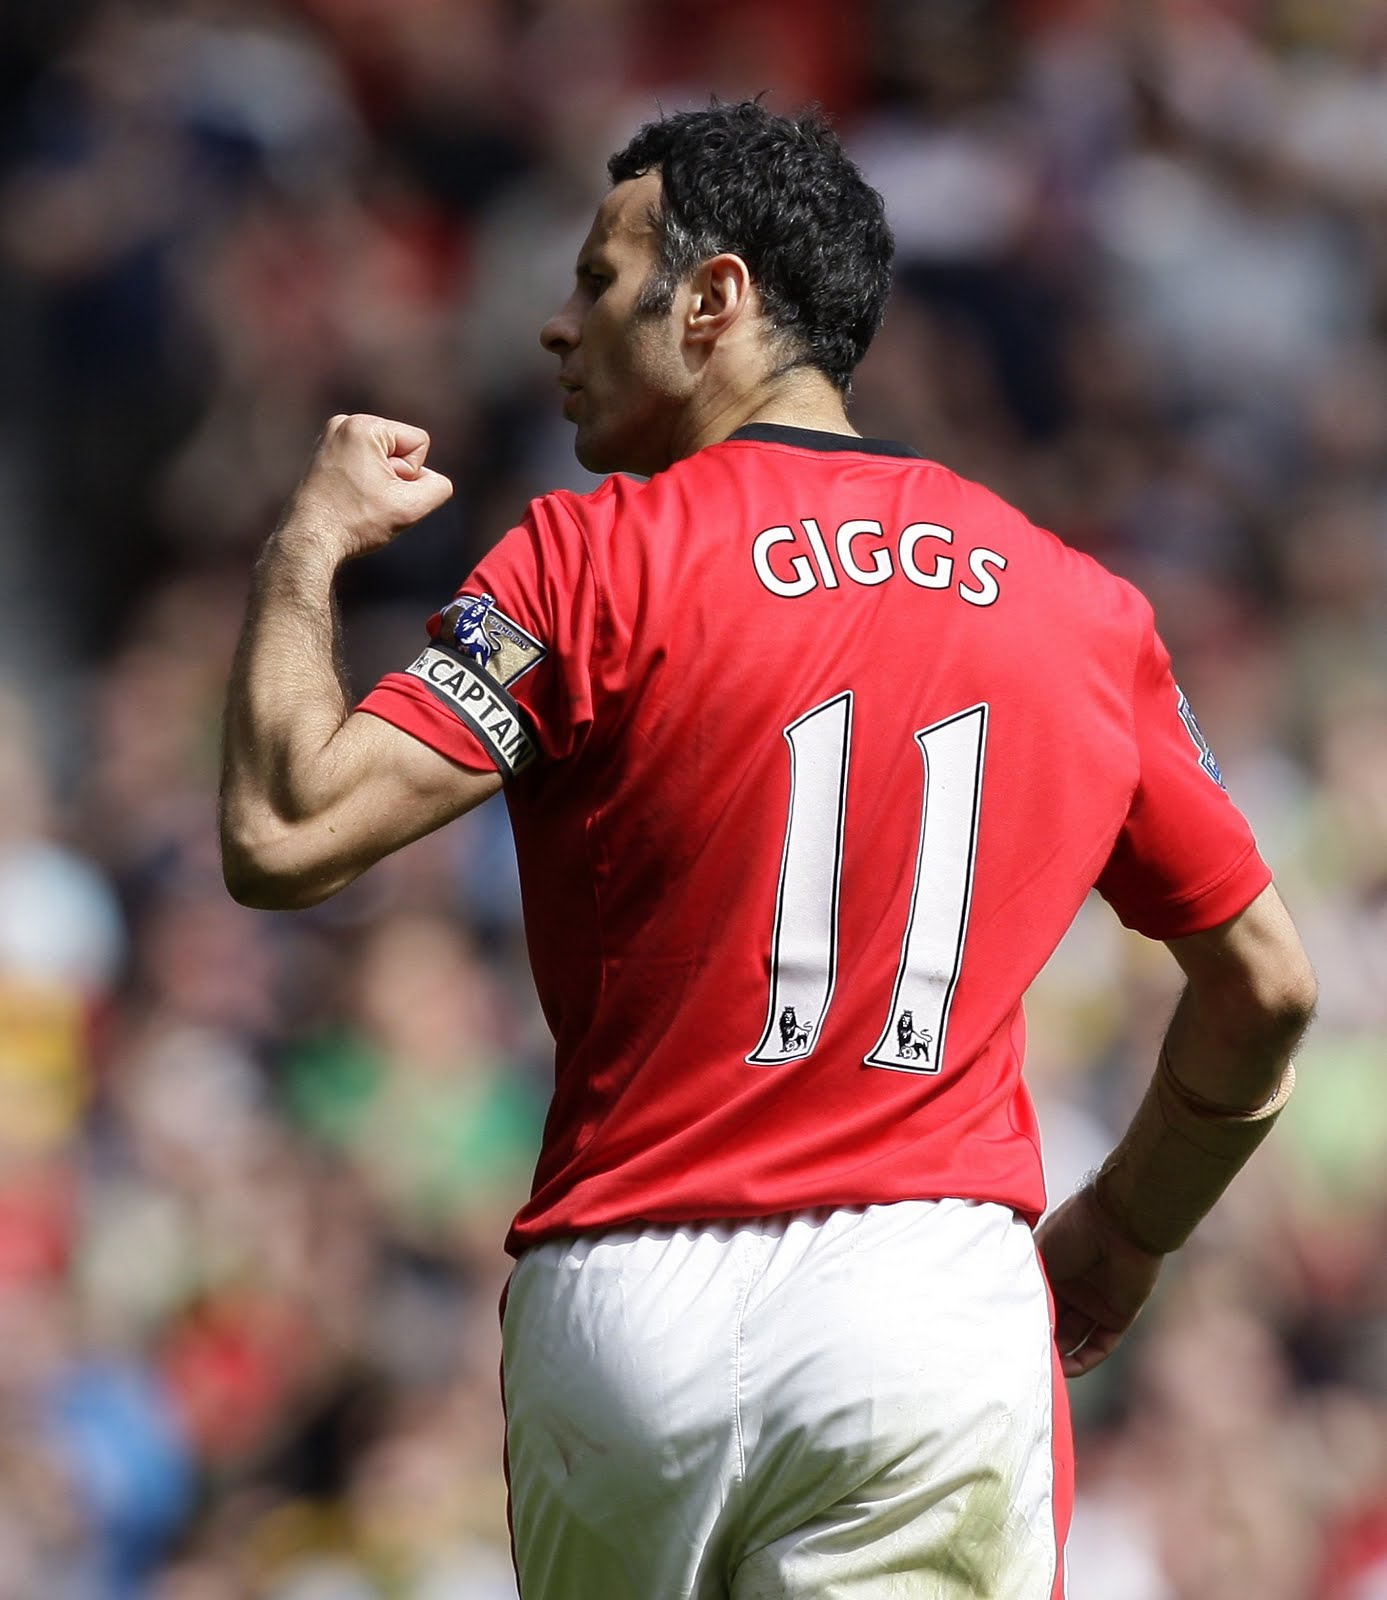 All4All: Ryan Giggs Photos in Tottenham Match